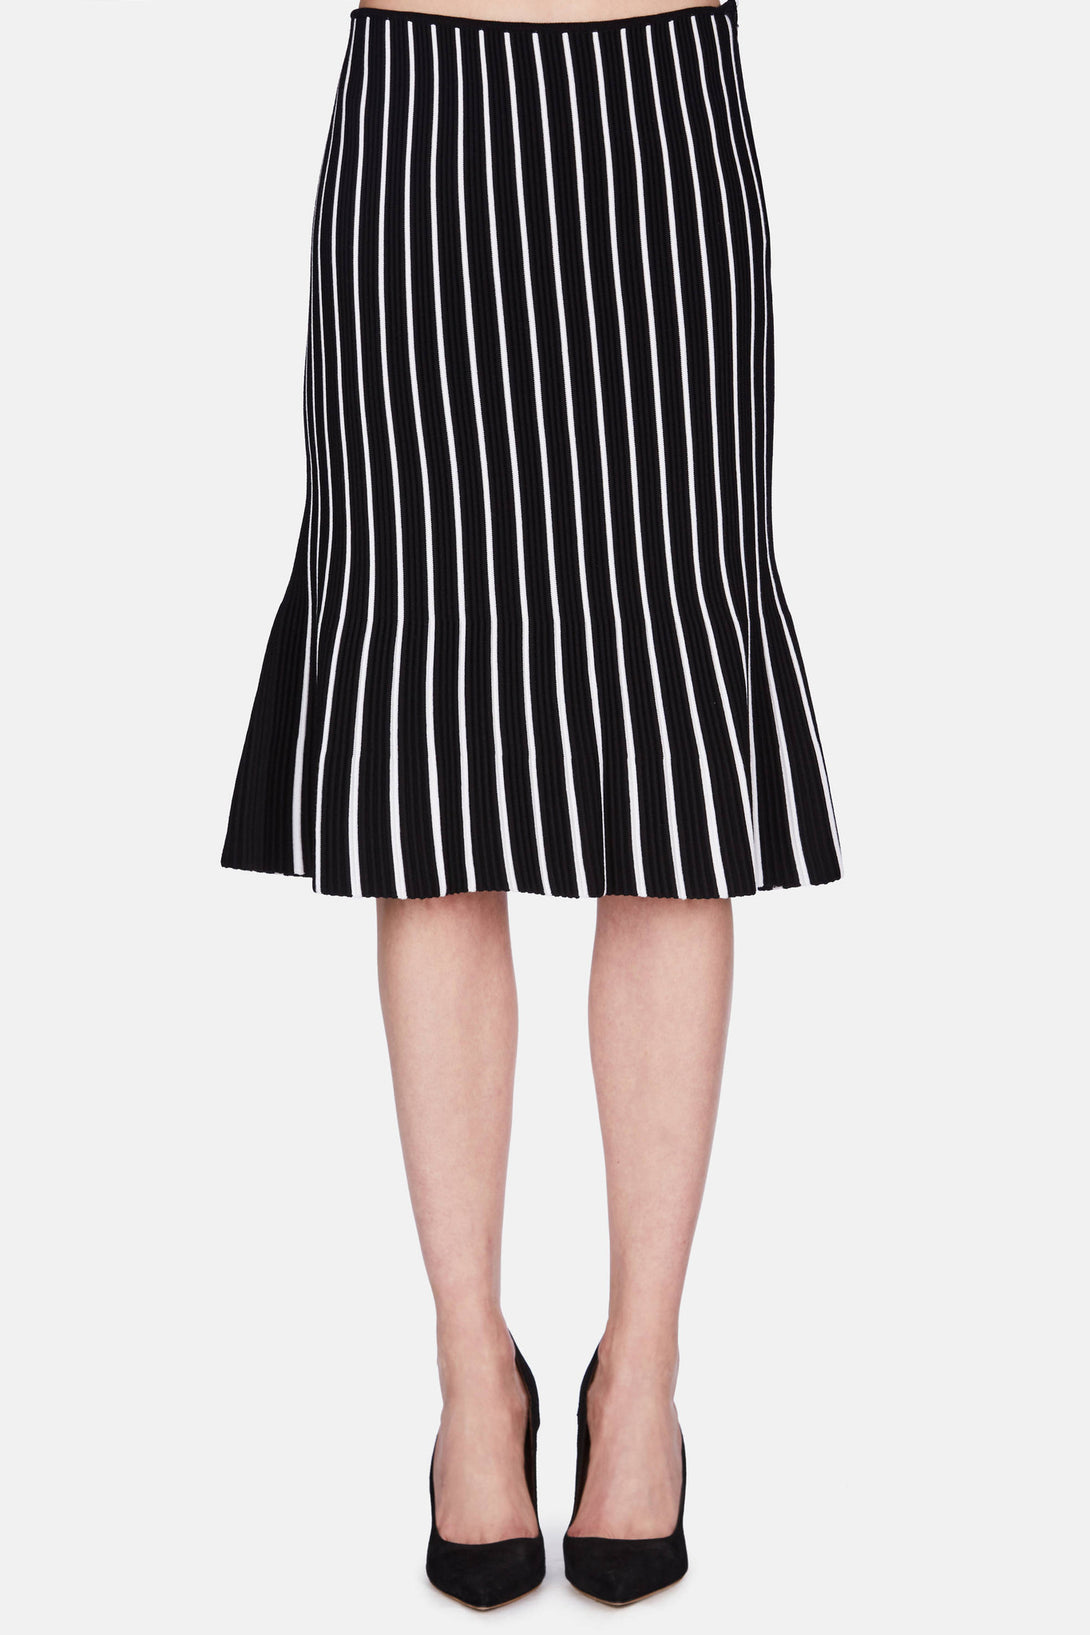 Contrast Stripe Midi Skirt - Black